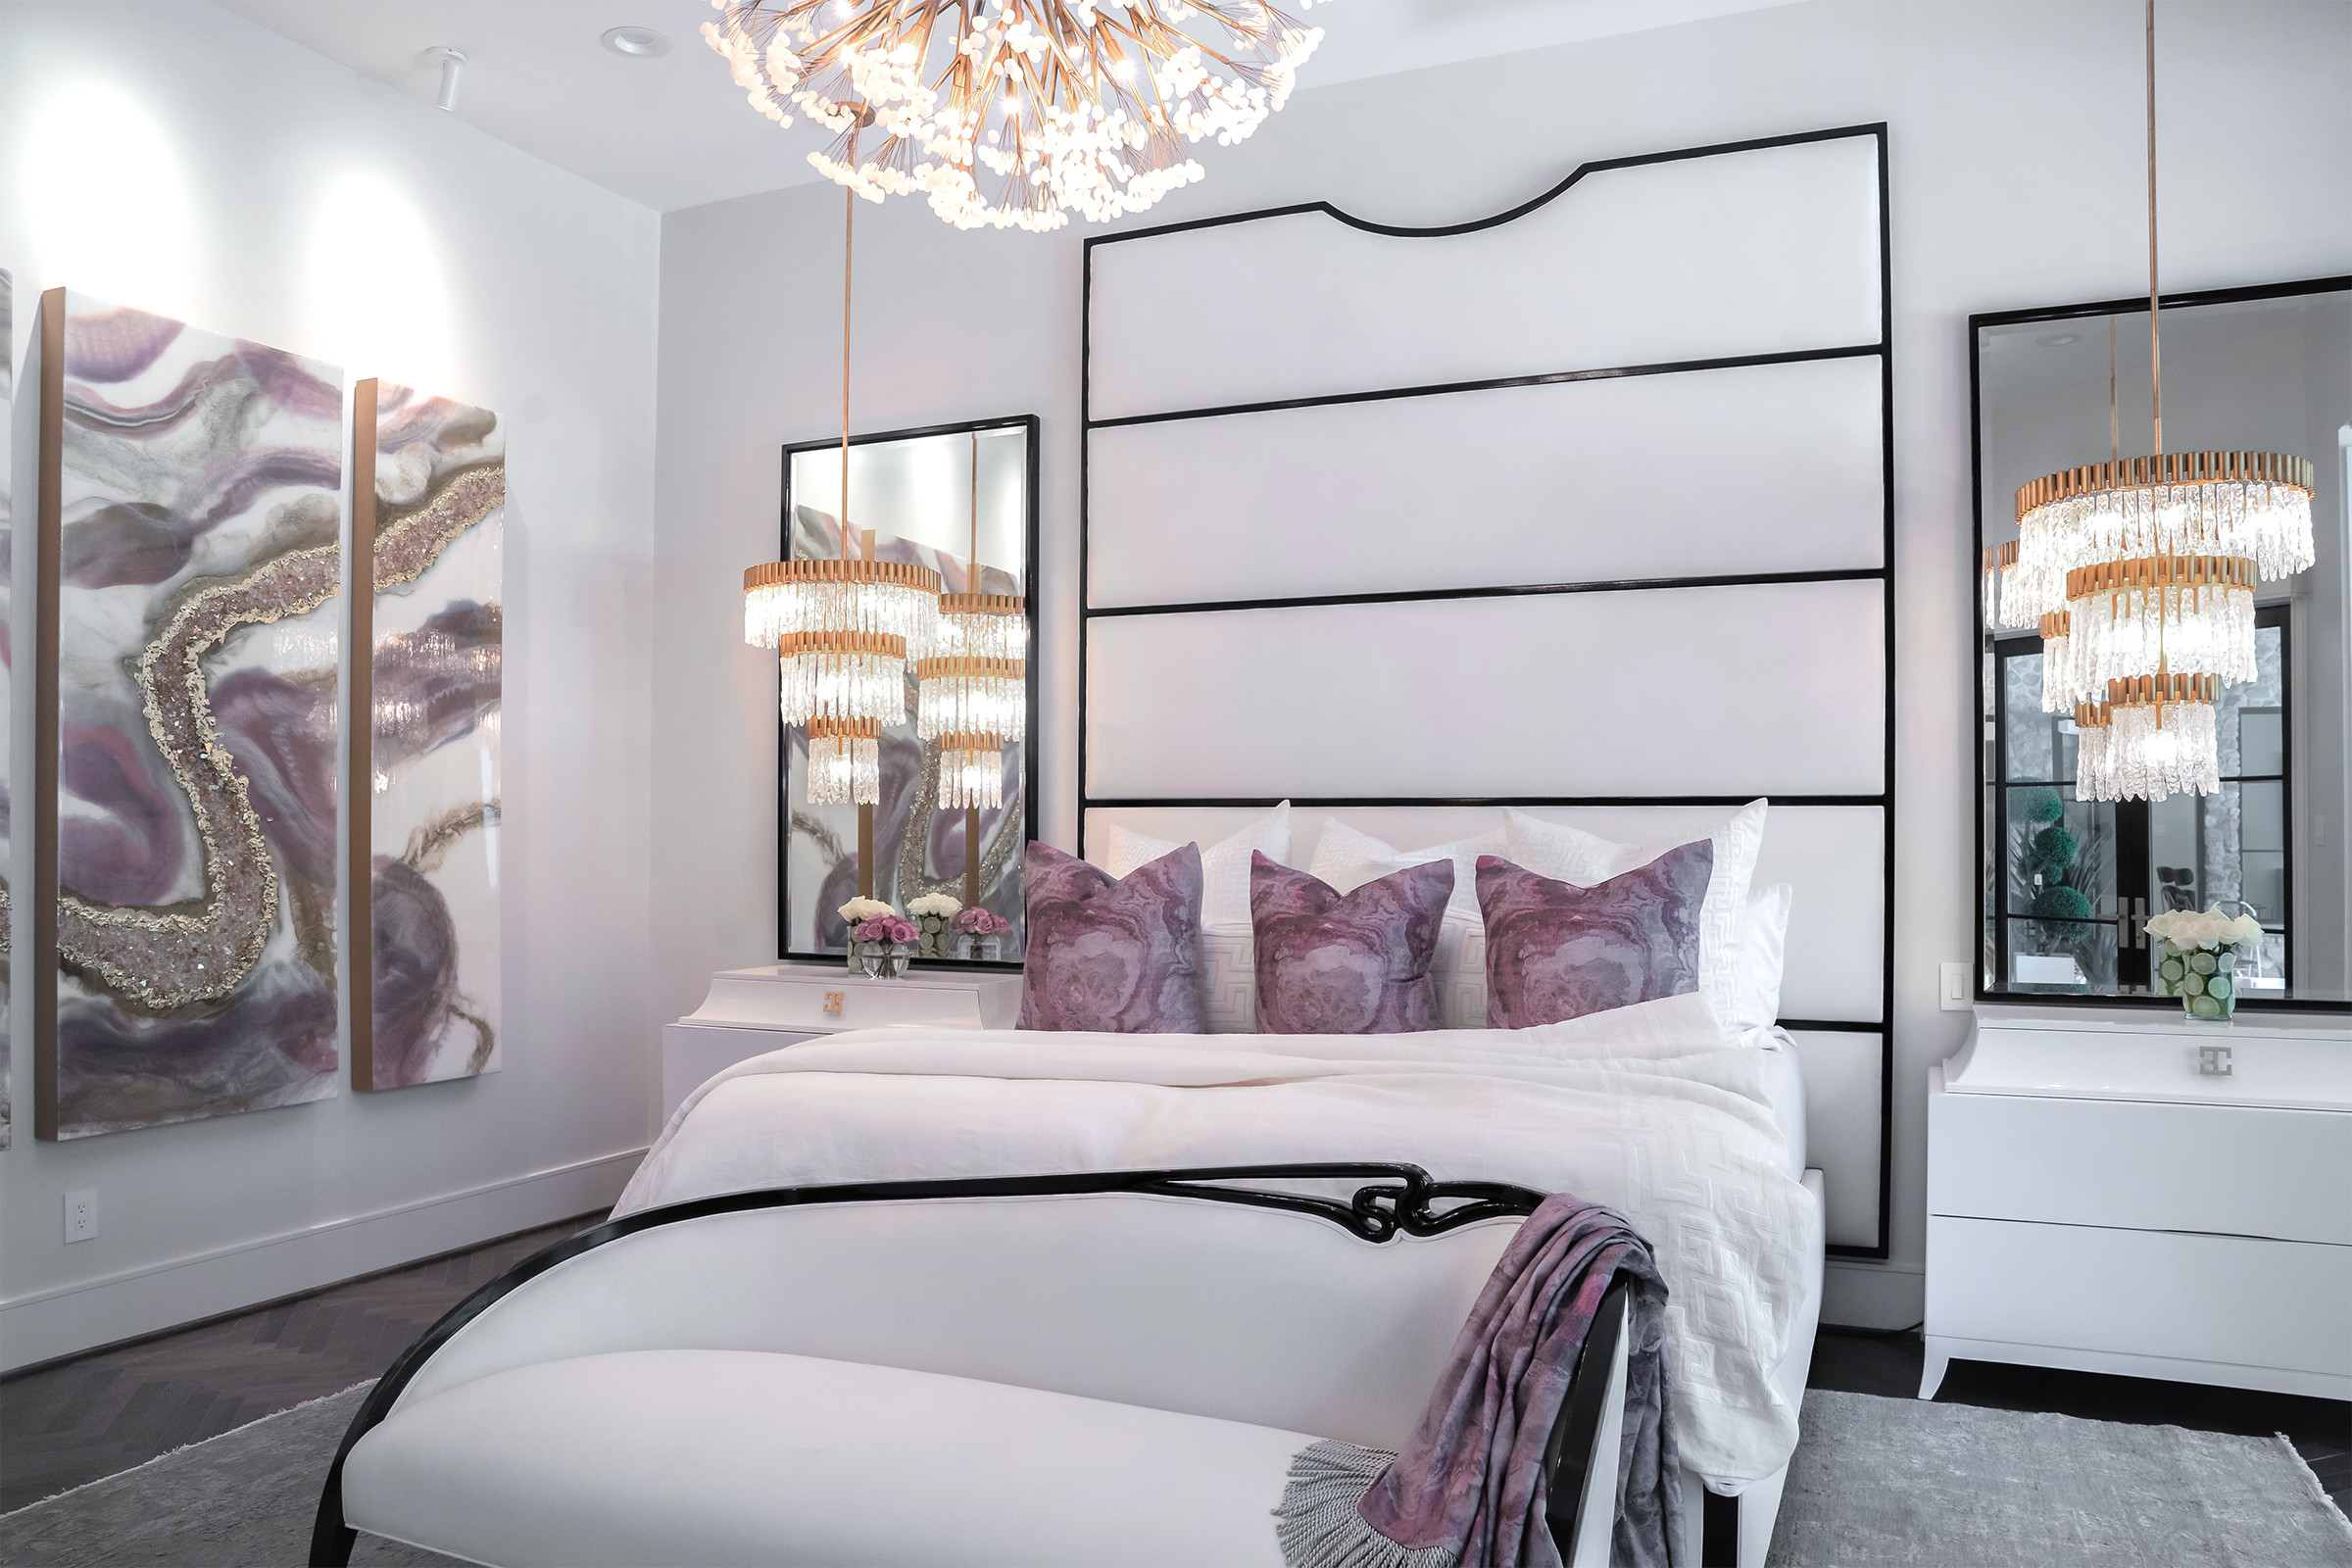 75 Beautiful Guest Bedroom With No Fireplace Pictures & Ideas - November,  2020 | Houzz